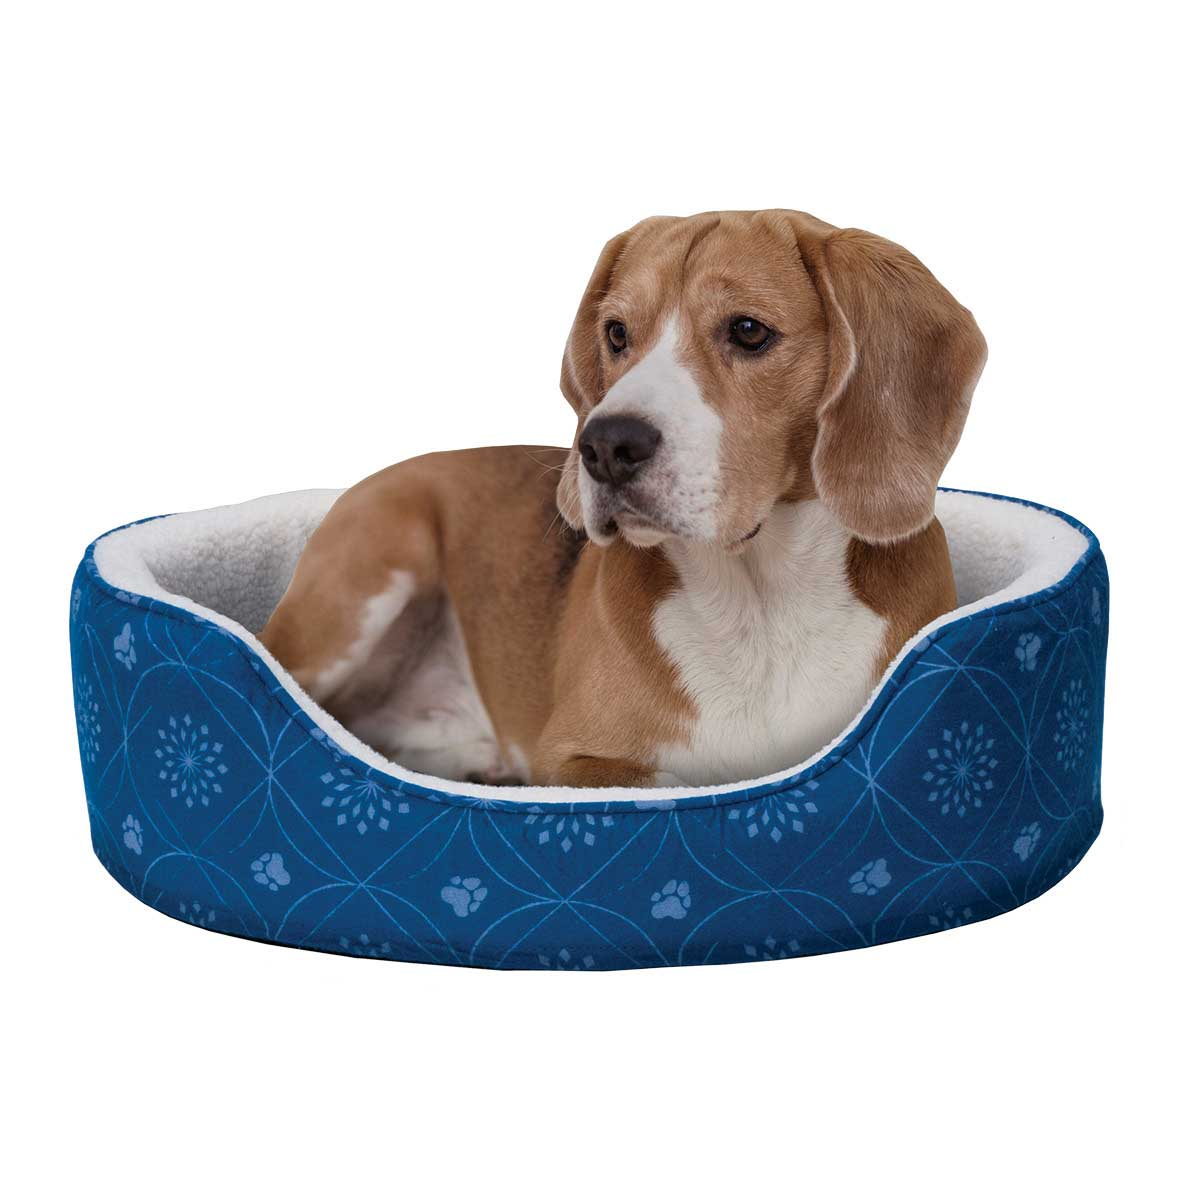 FurHaven Nap Paw Print Decor Flannel Twilight Blue Oval Pet Bed - 21 inches by 26 inches